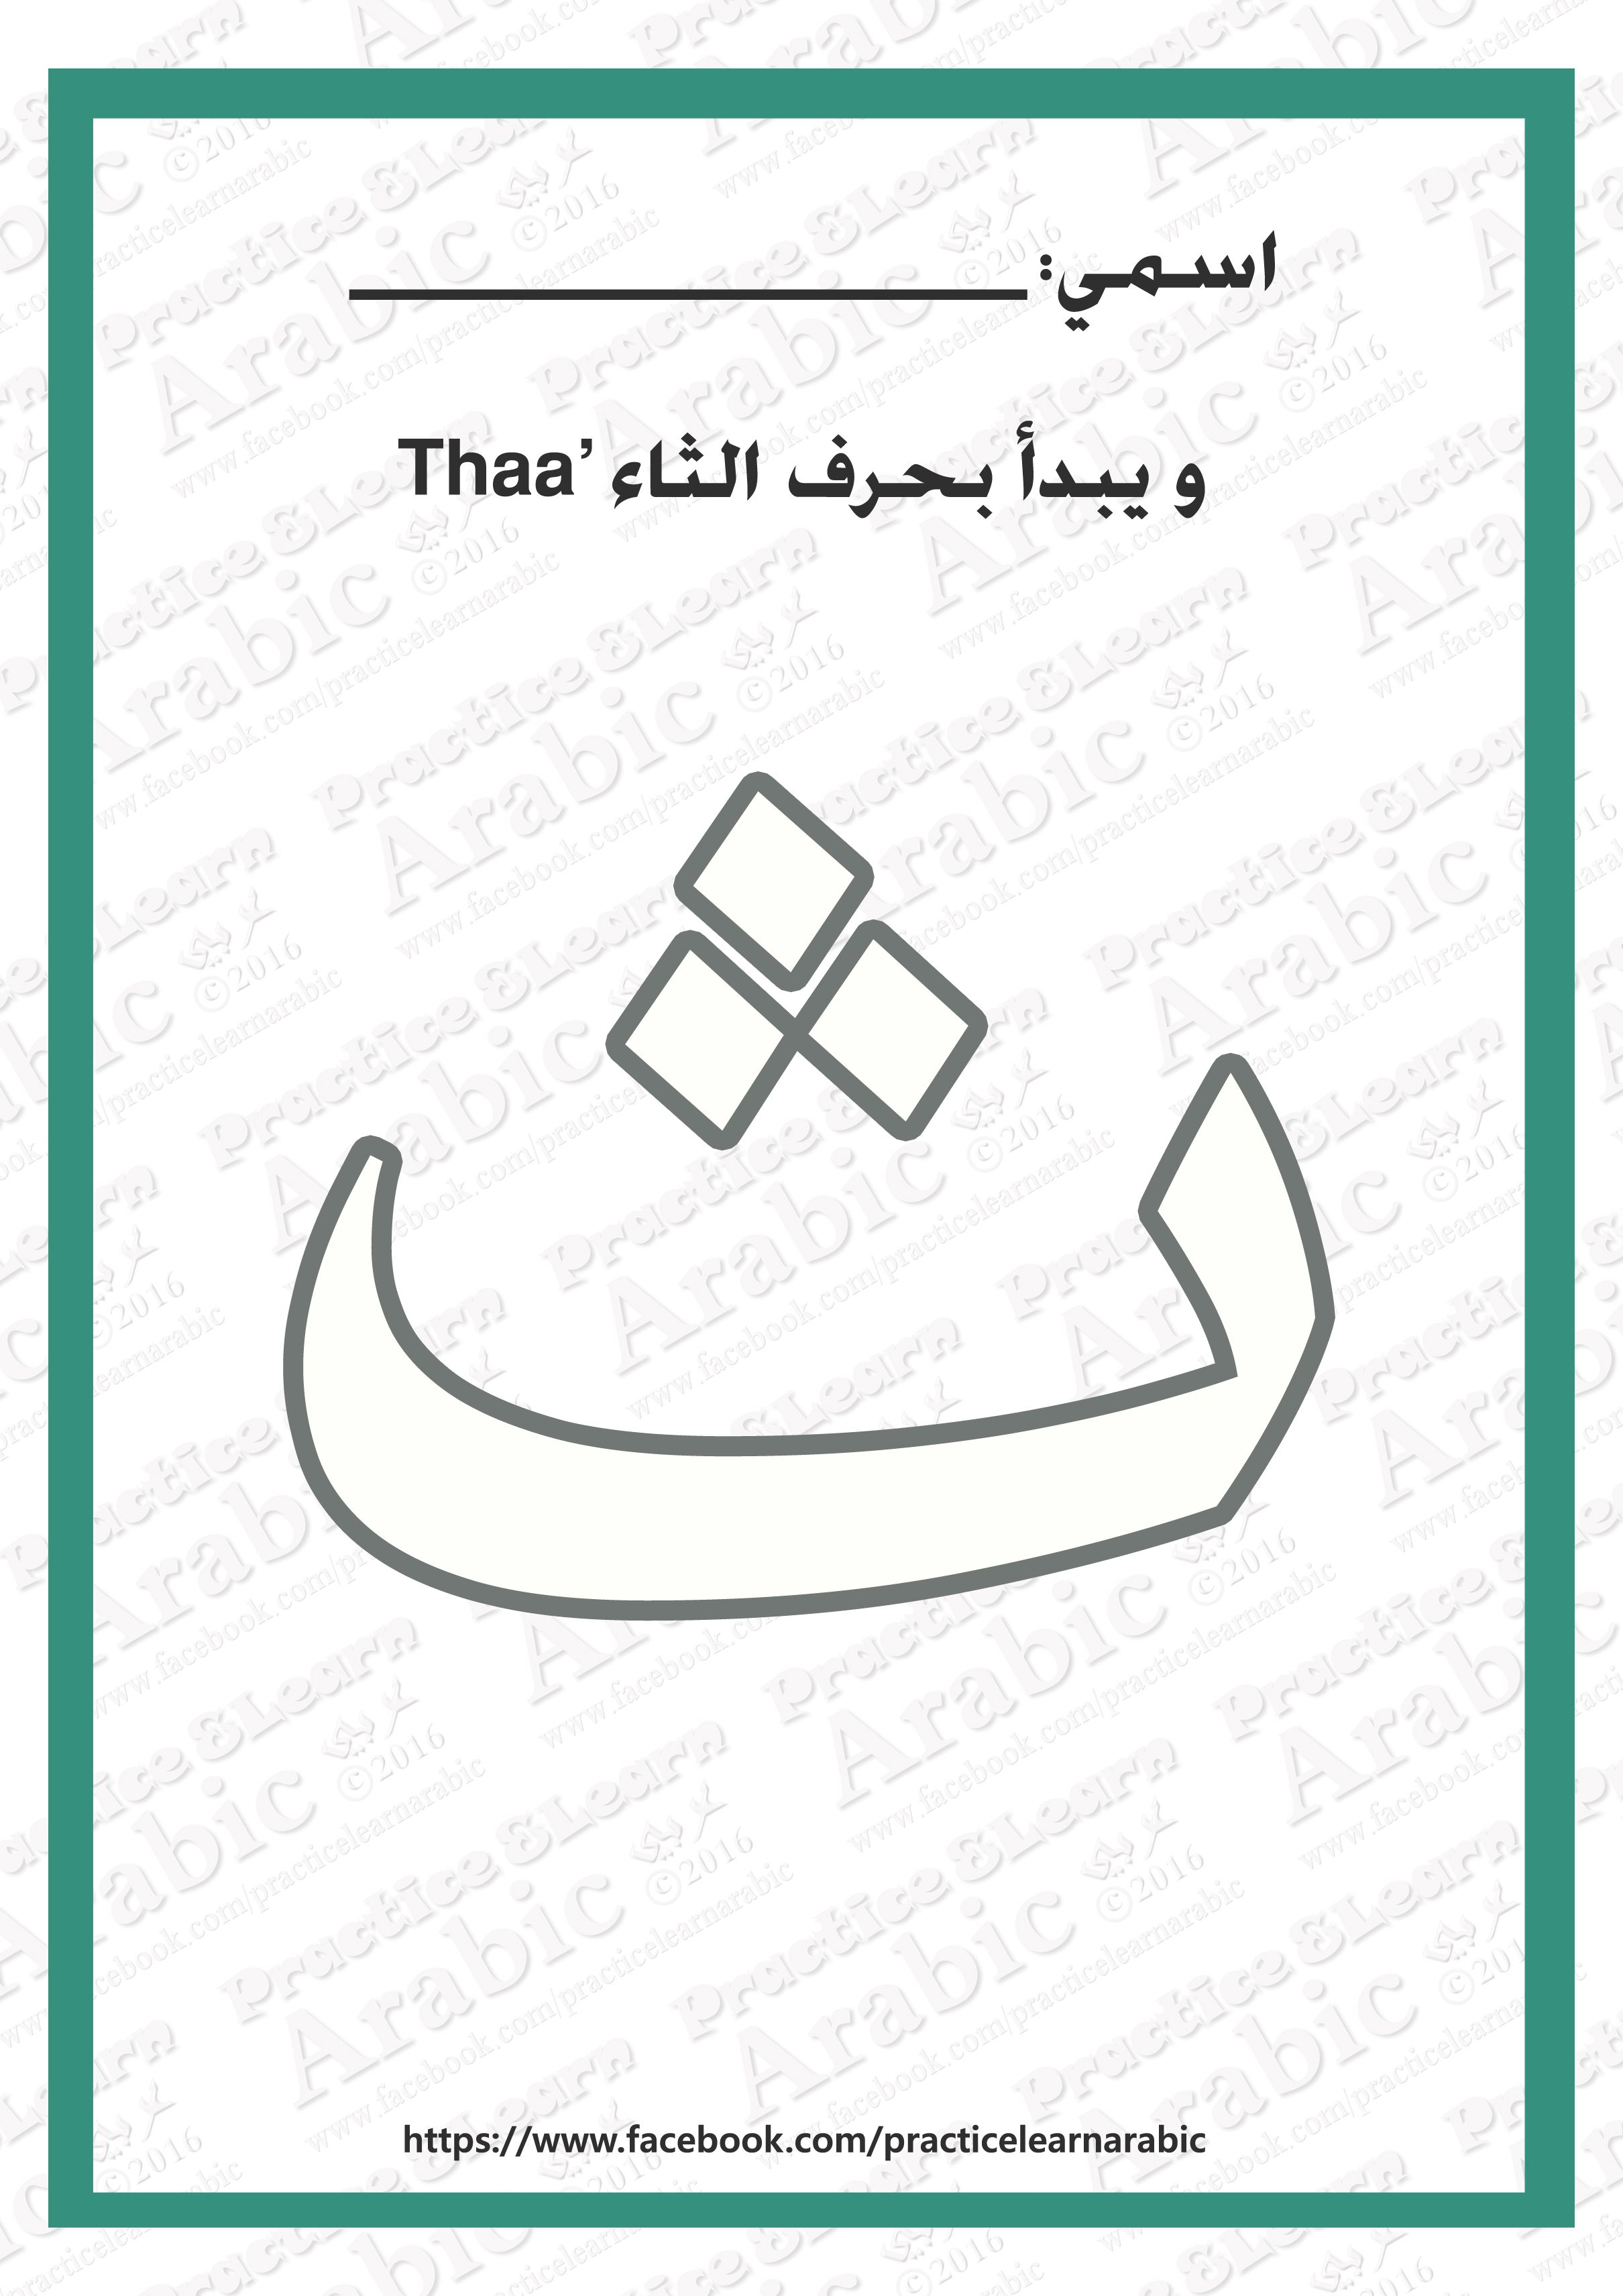 Pin By Practice And Learn Arabic On First Letter Of My Name In Arabic